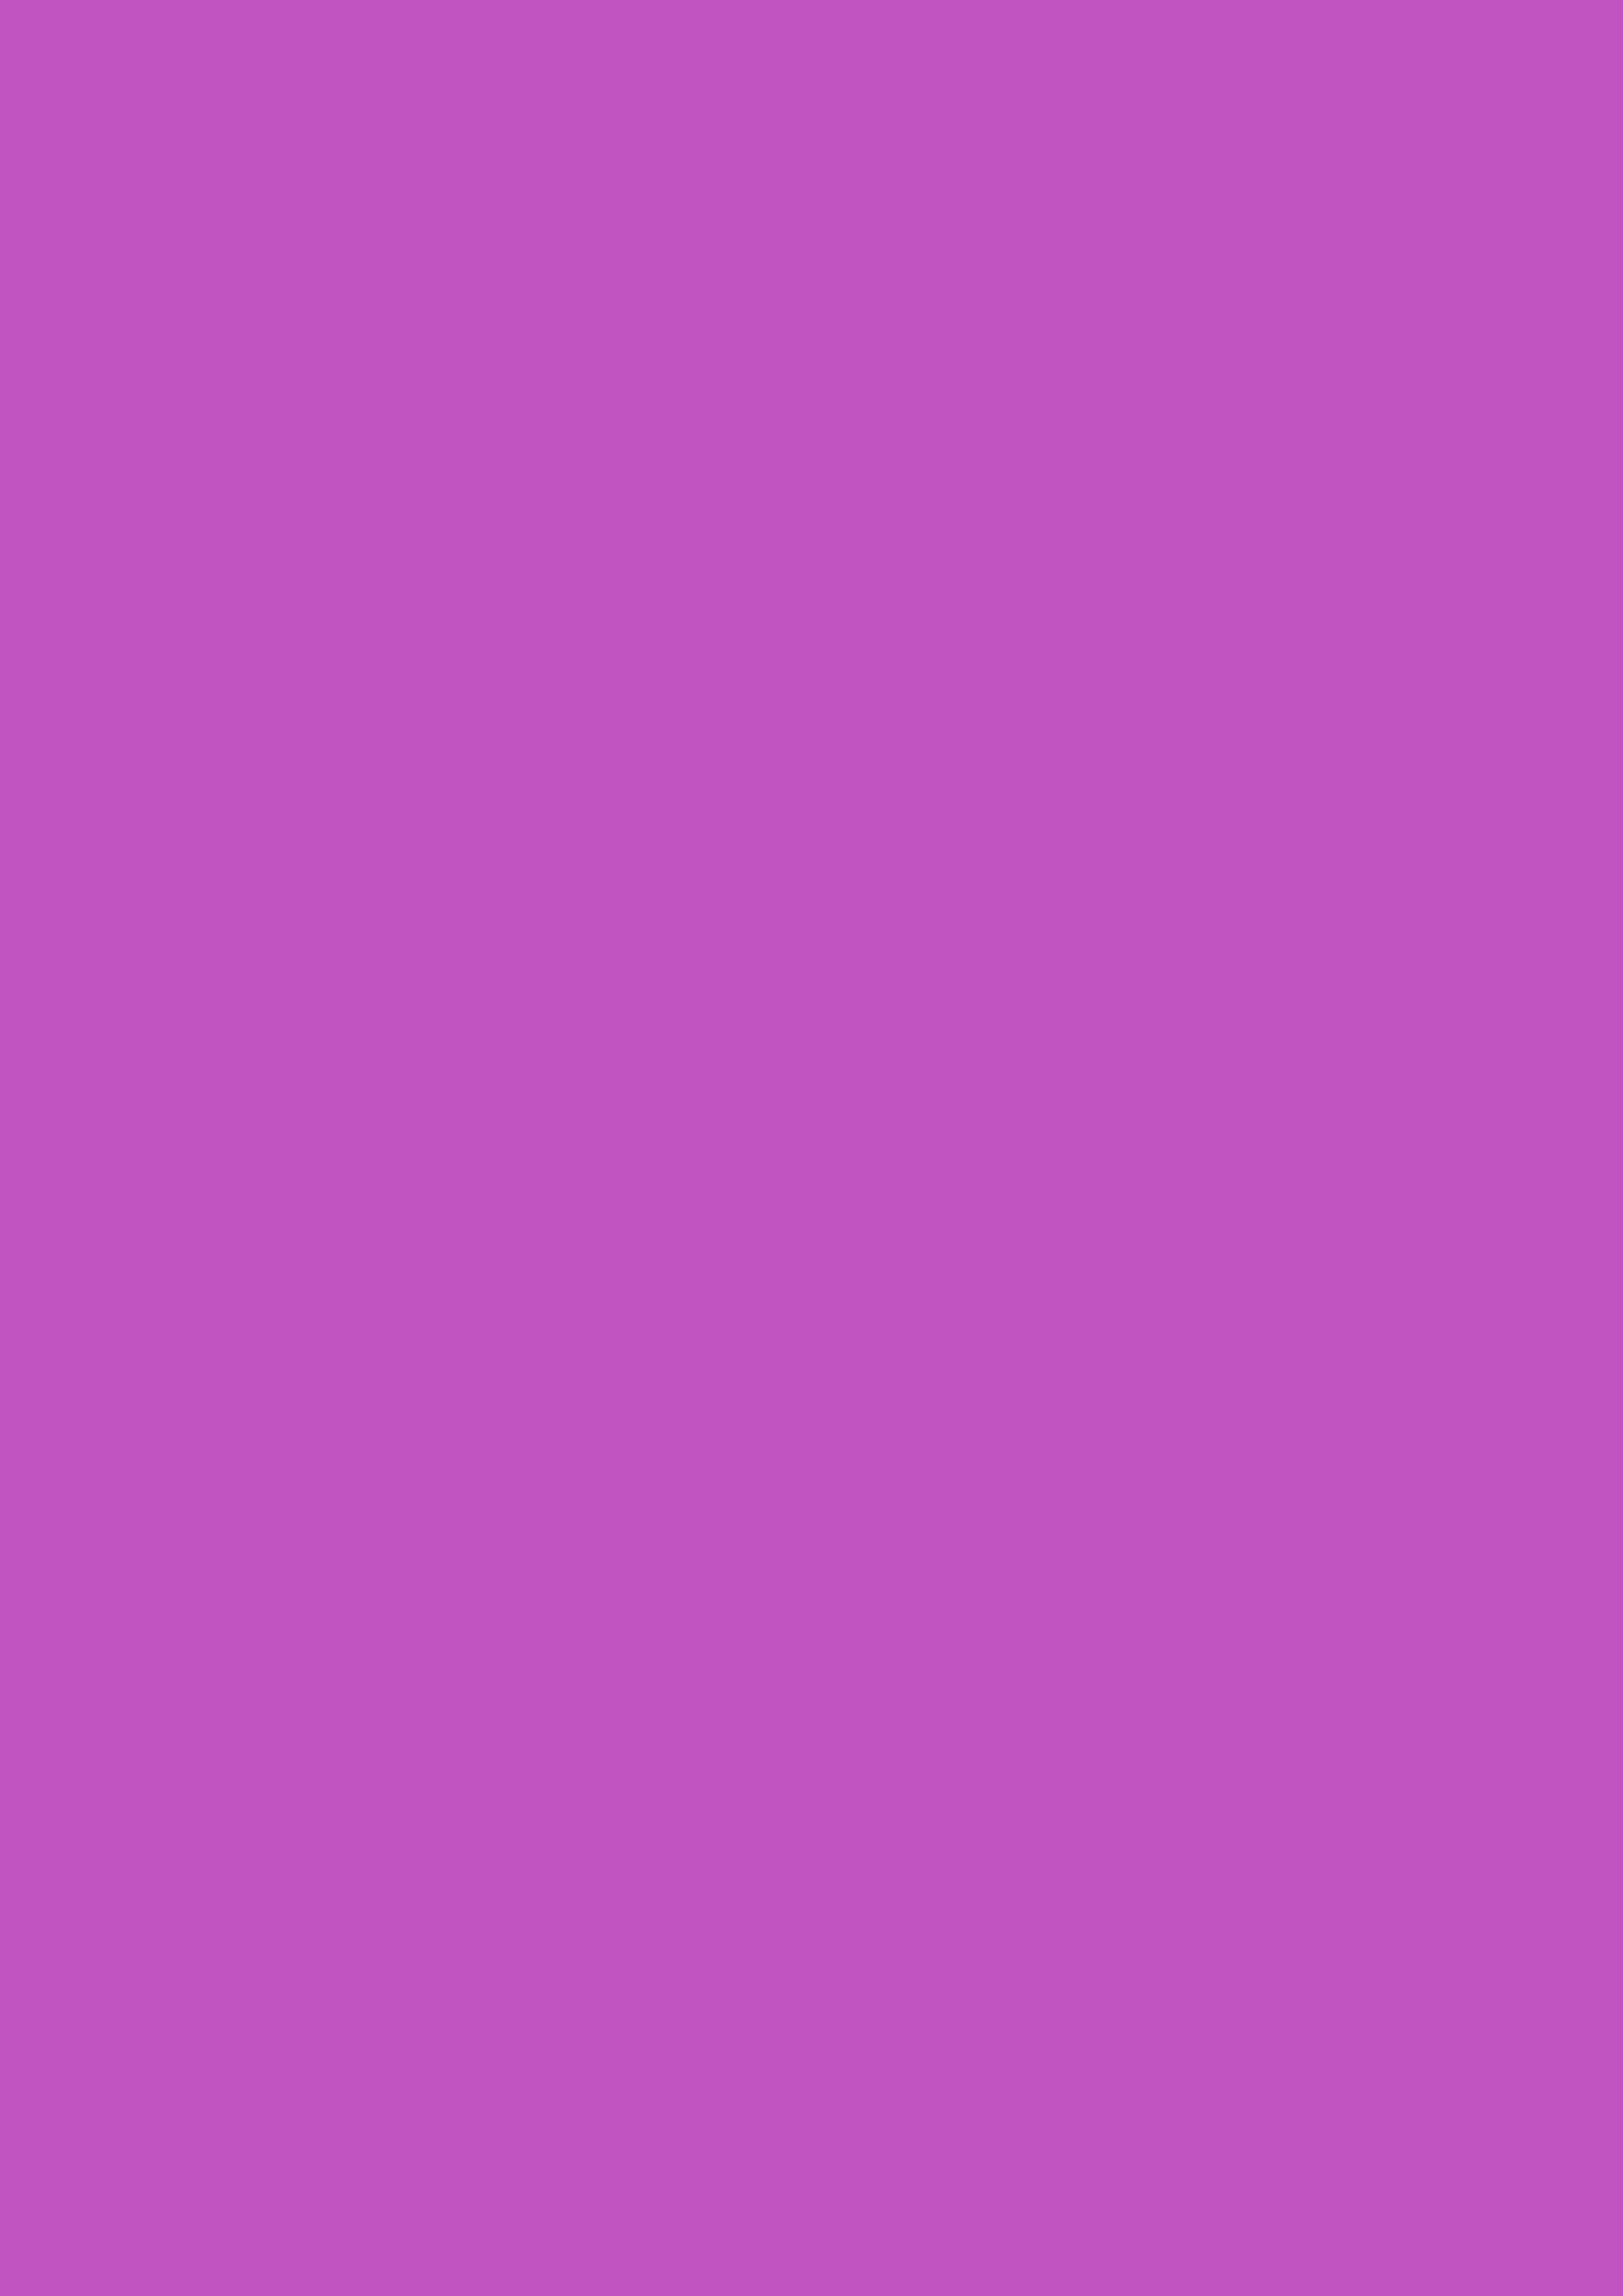 2480x3508 Deep Fuchsia Solid Color Background